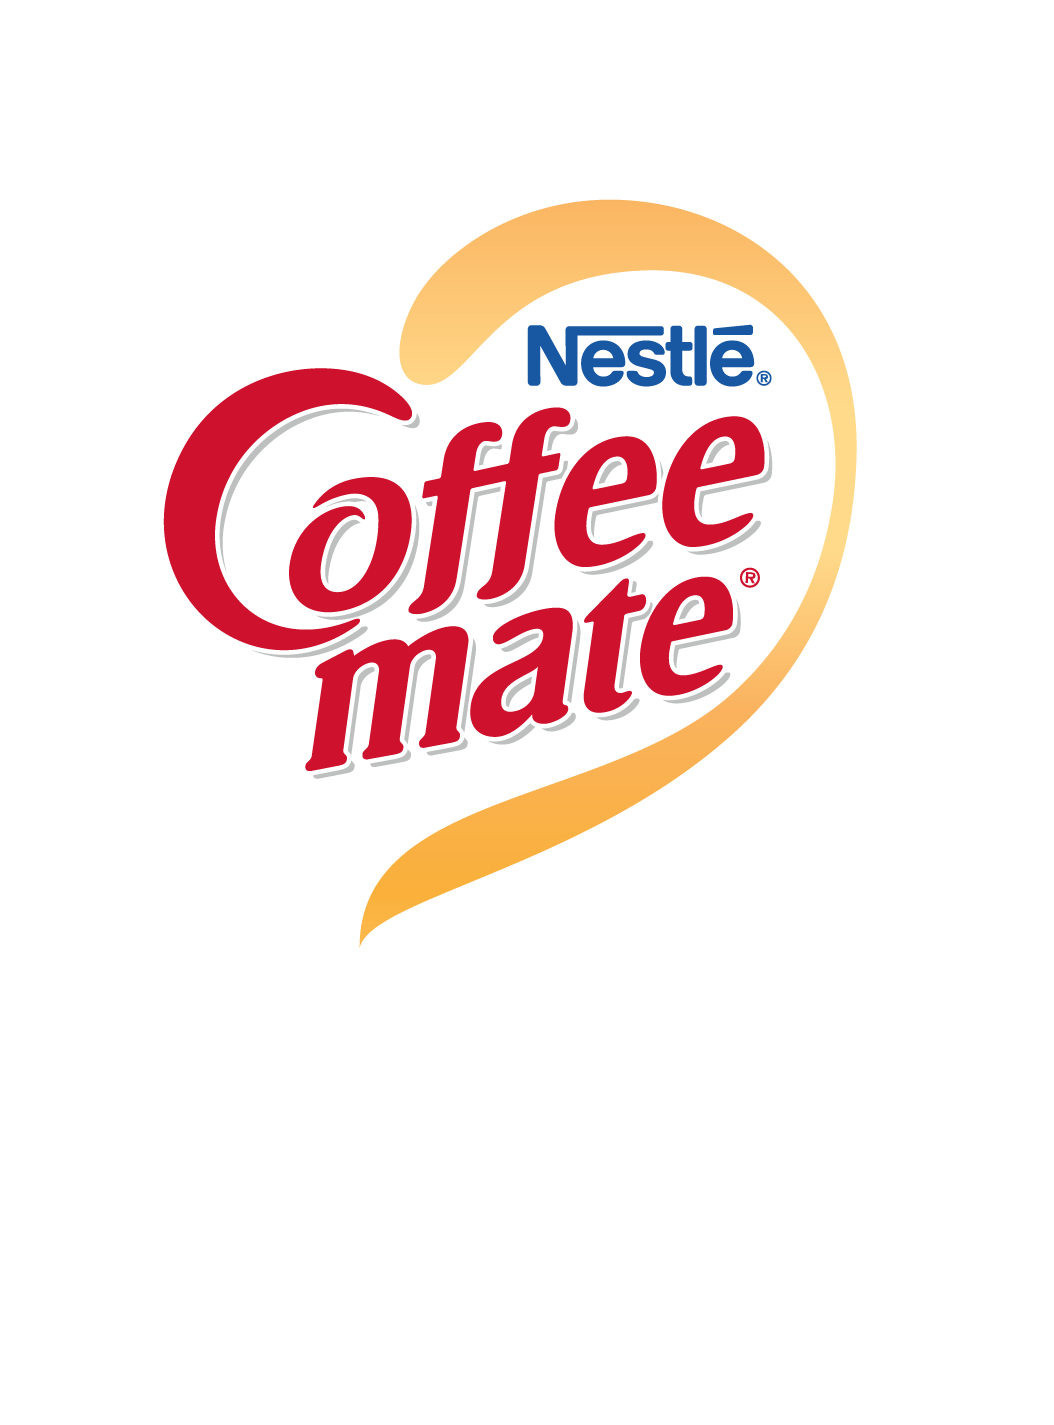 Coffee mate® in 2019.